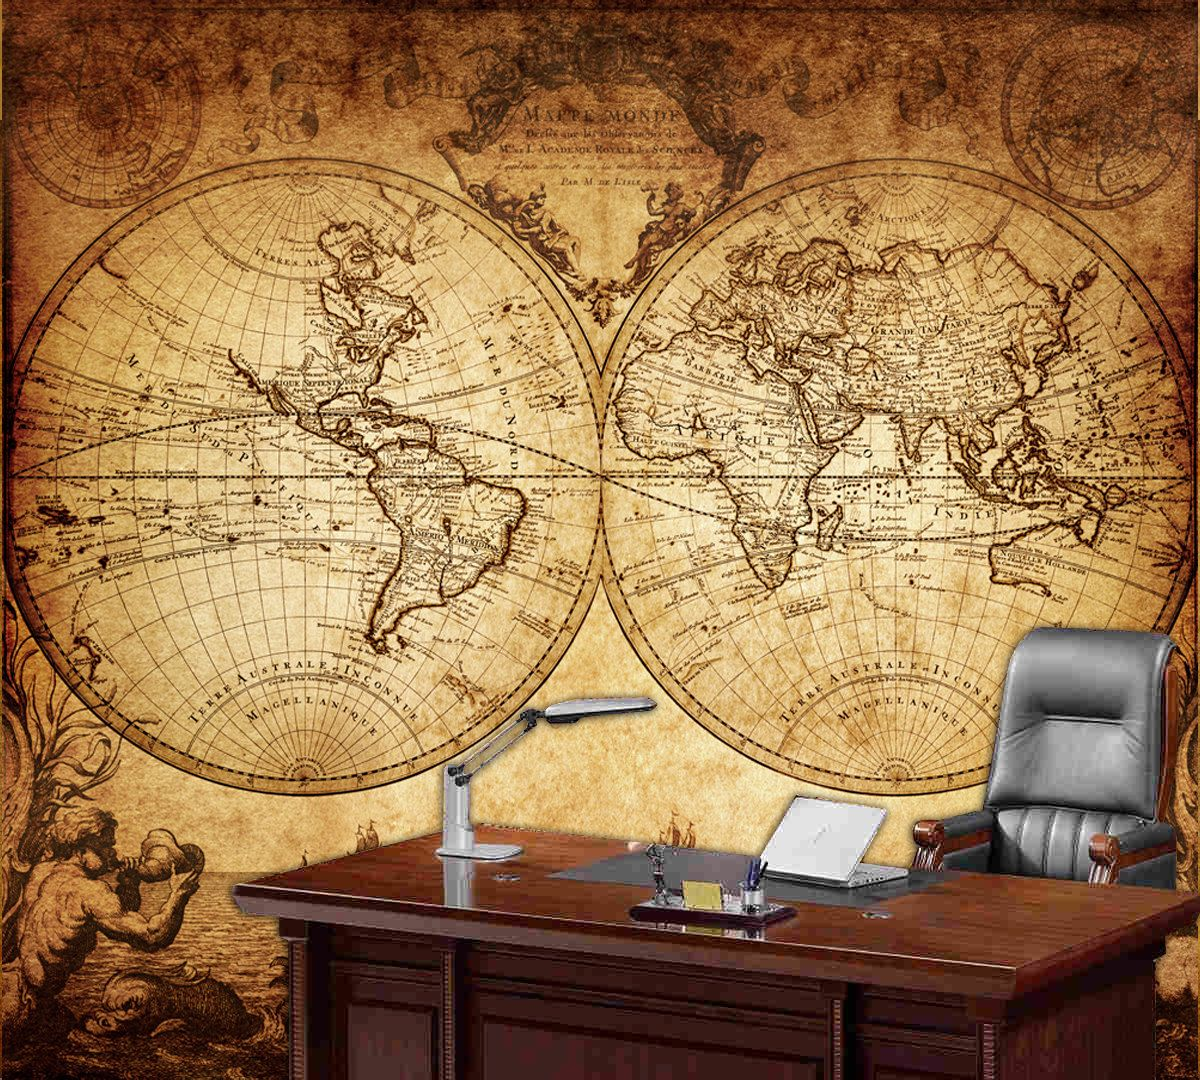 World map wall mural vintage old map of the world 1733 world map wall mural vintage old map of the world by styleawall 48000 gumiabroncs